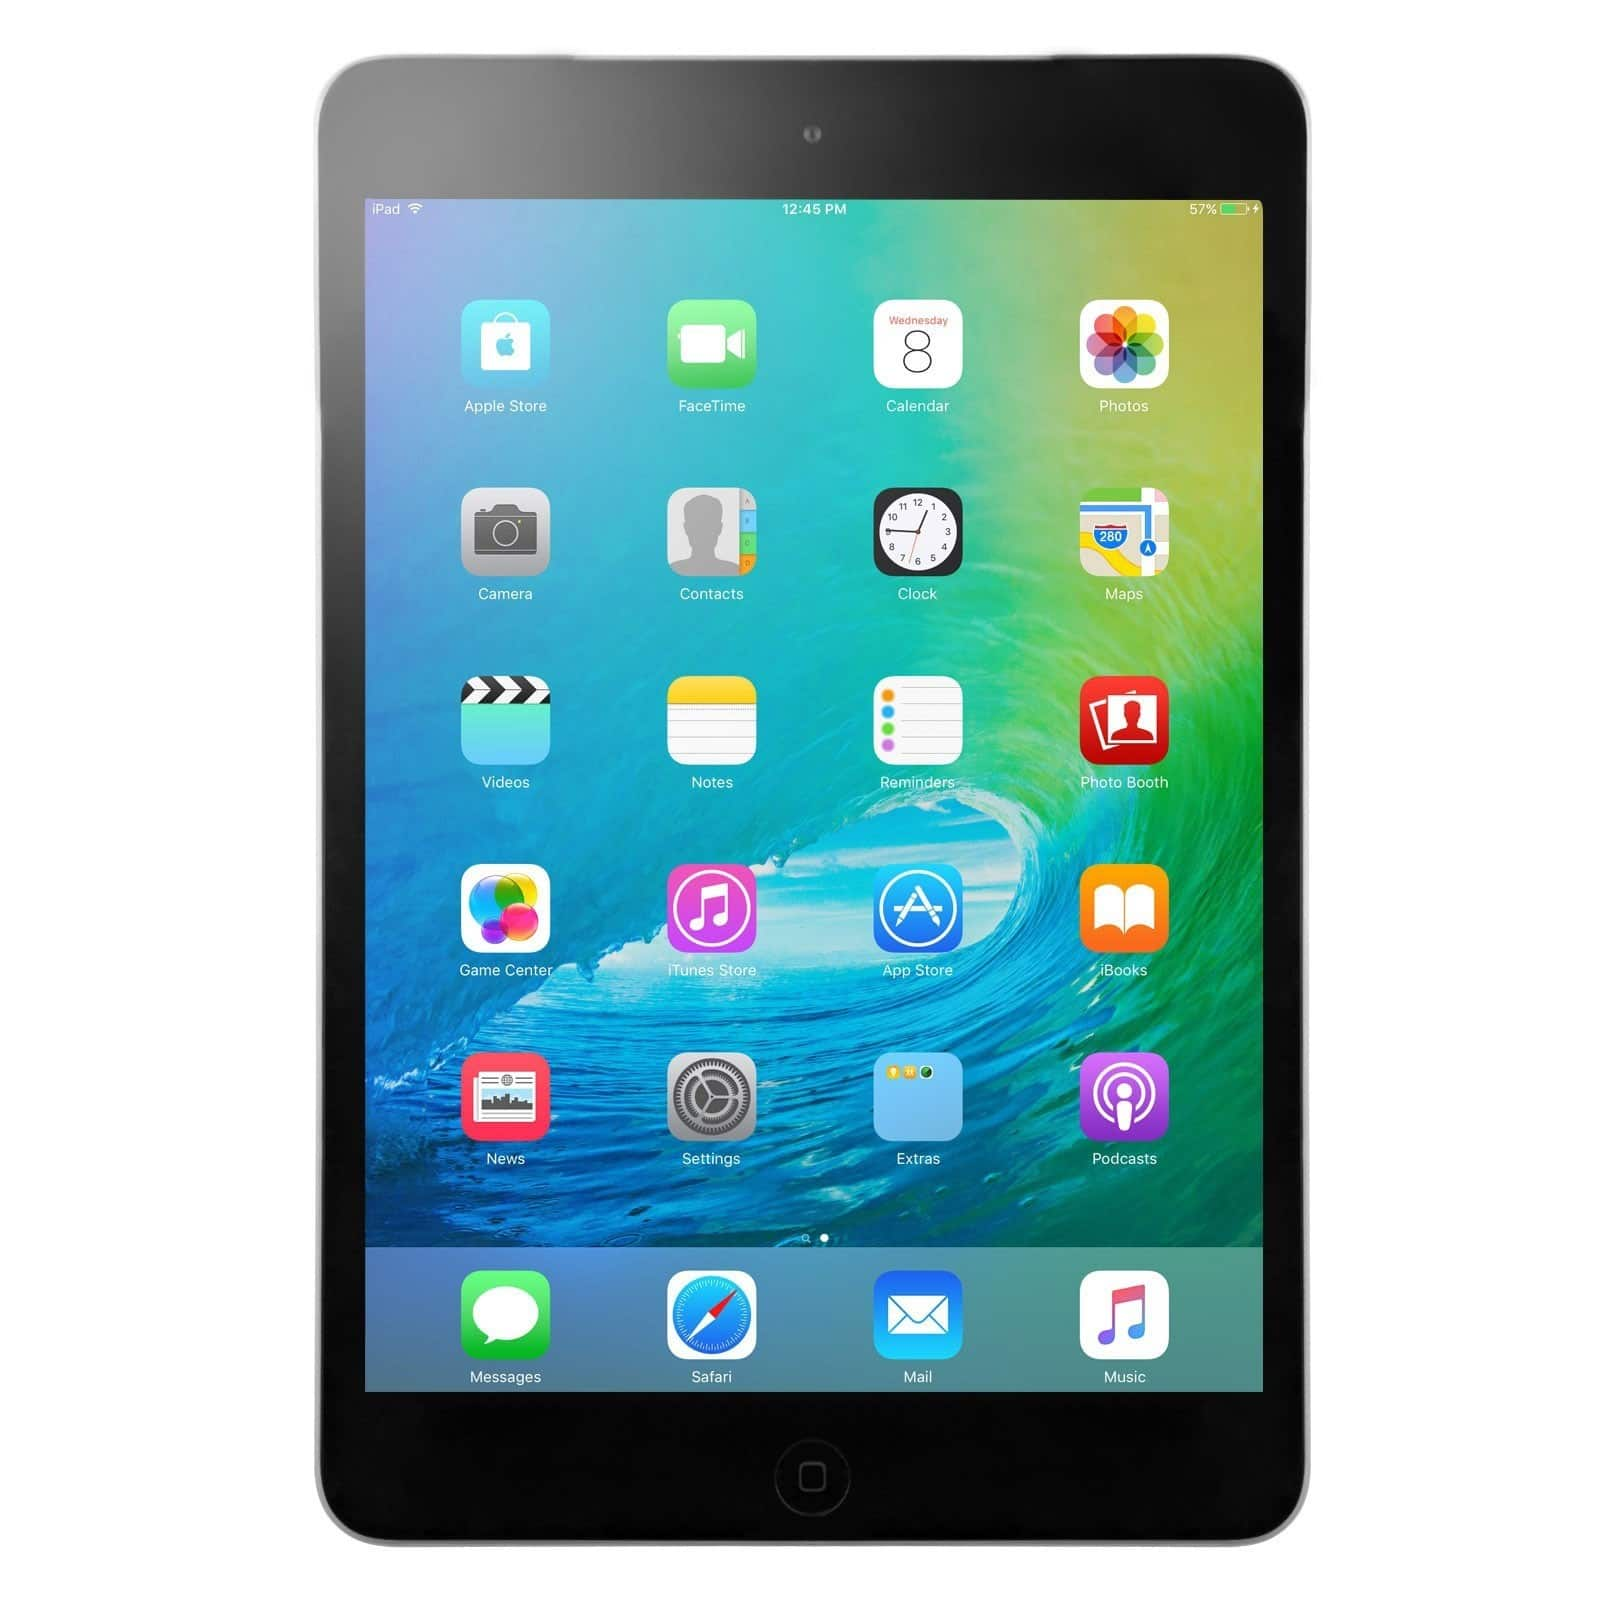 Apple iPad Mini 2 16GB WiFi + Cellular (Refurb) $180 + free shipping